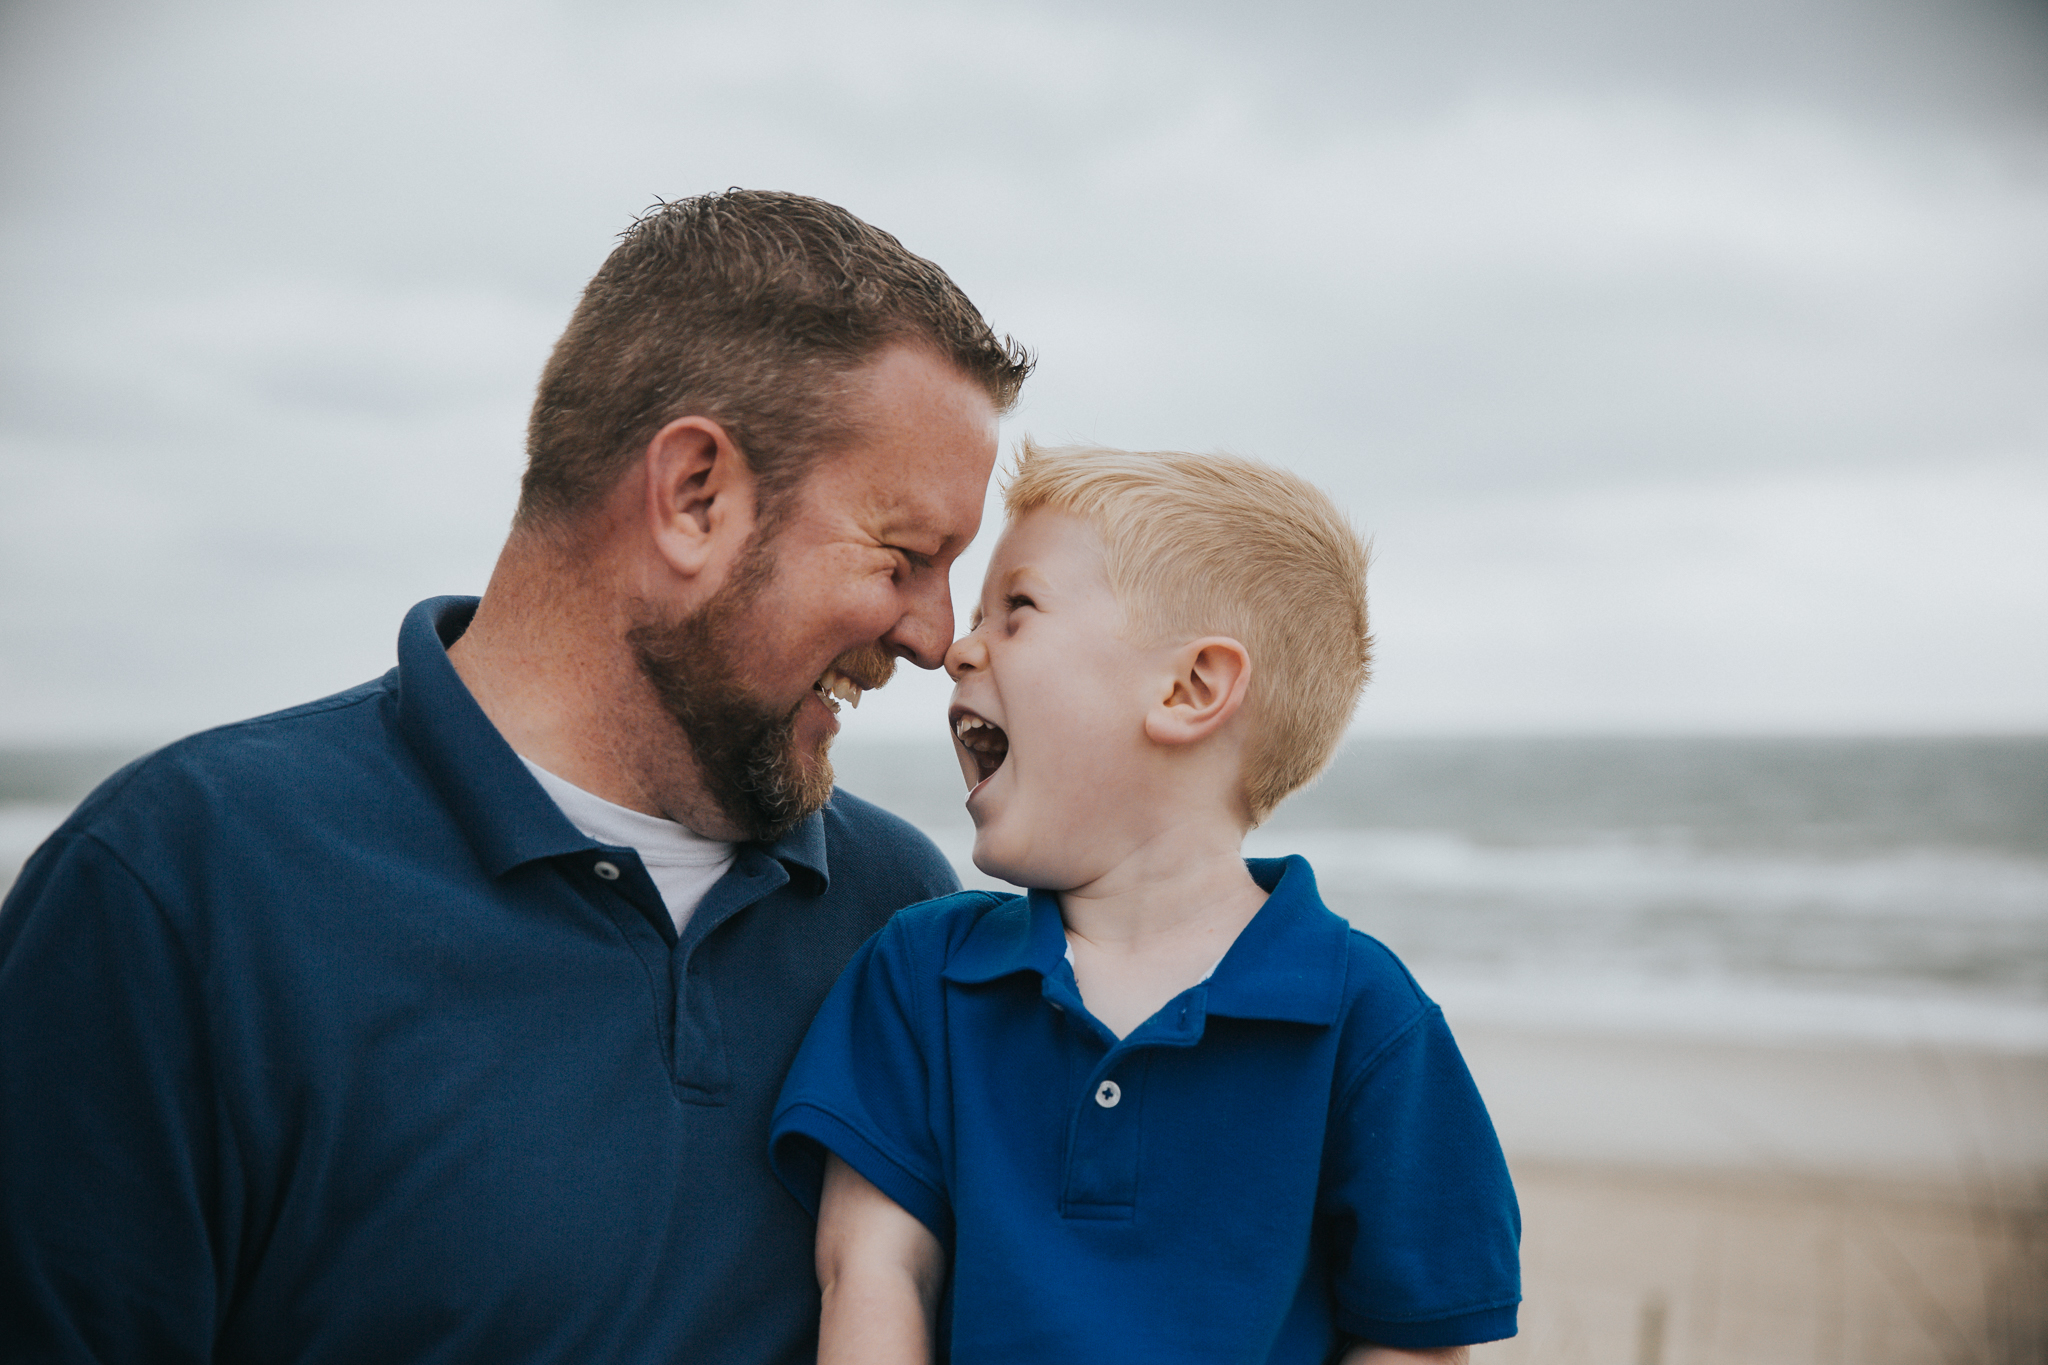 Father and son photograph taken at Carolina Beach by family photographer based in Wilmington NC